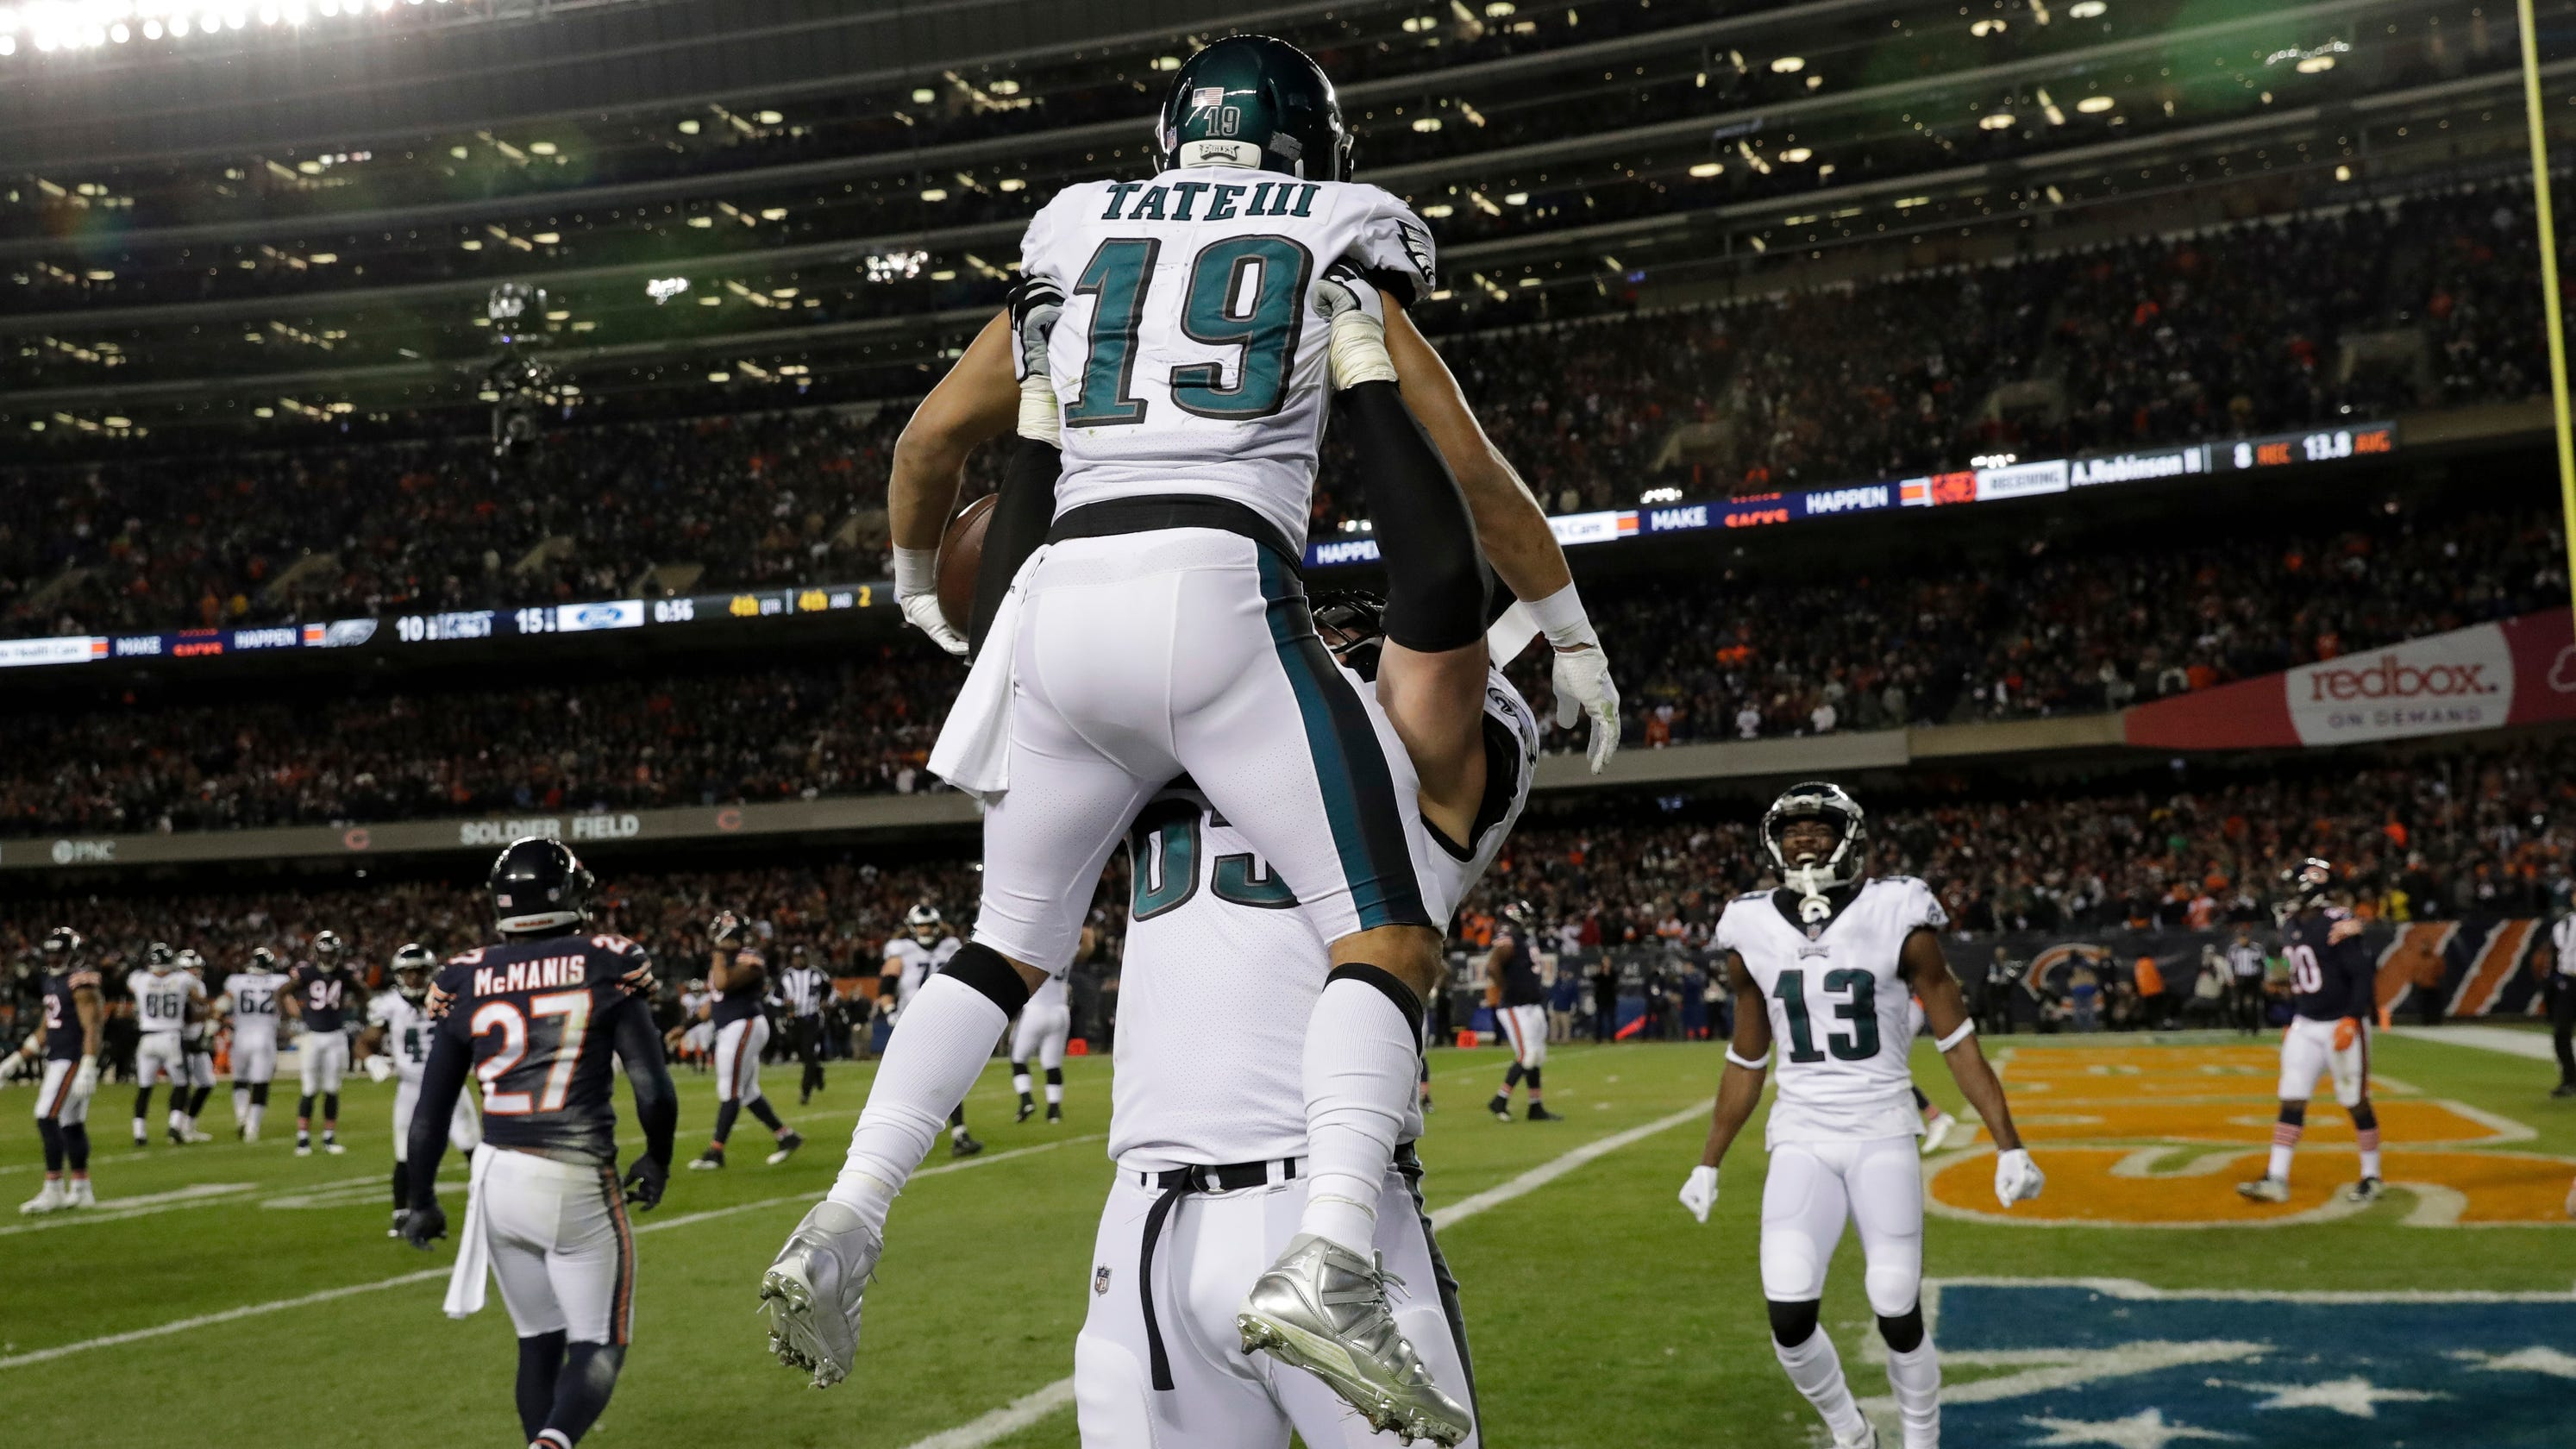 d5c821c0eb9 Foles' magic enables Eagles to survive Bears' last-second chance to win the  game